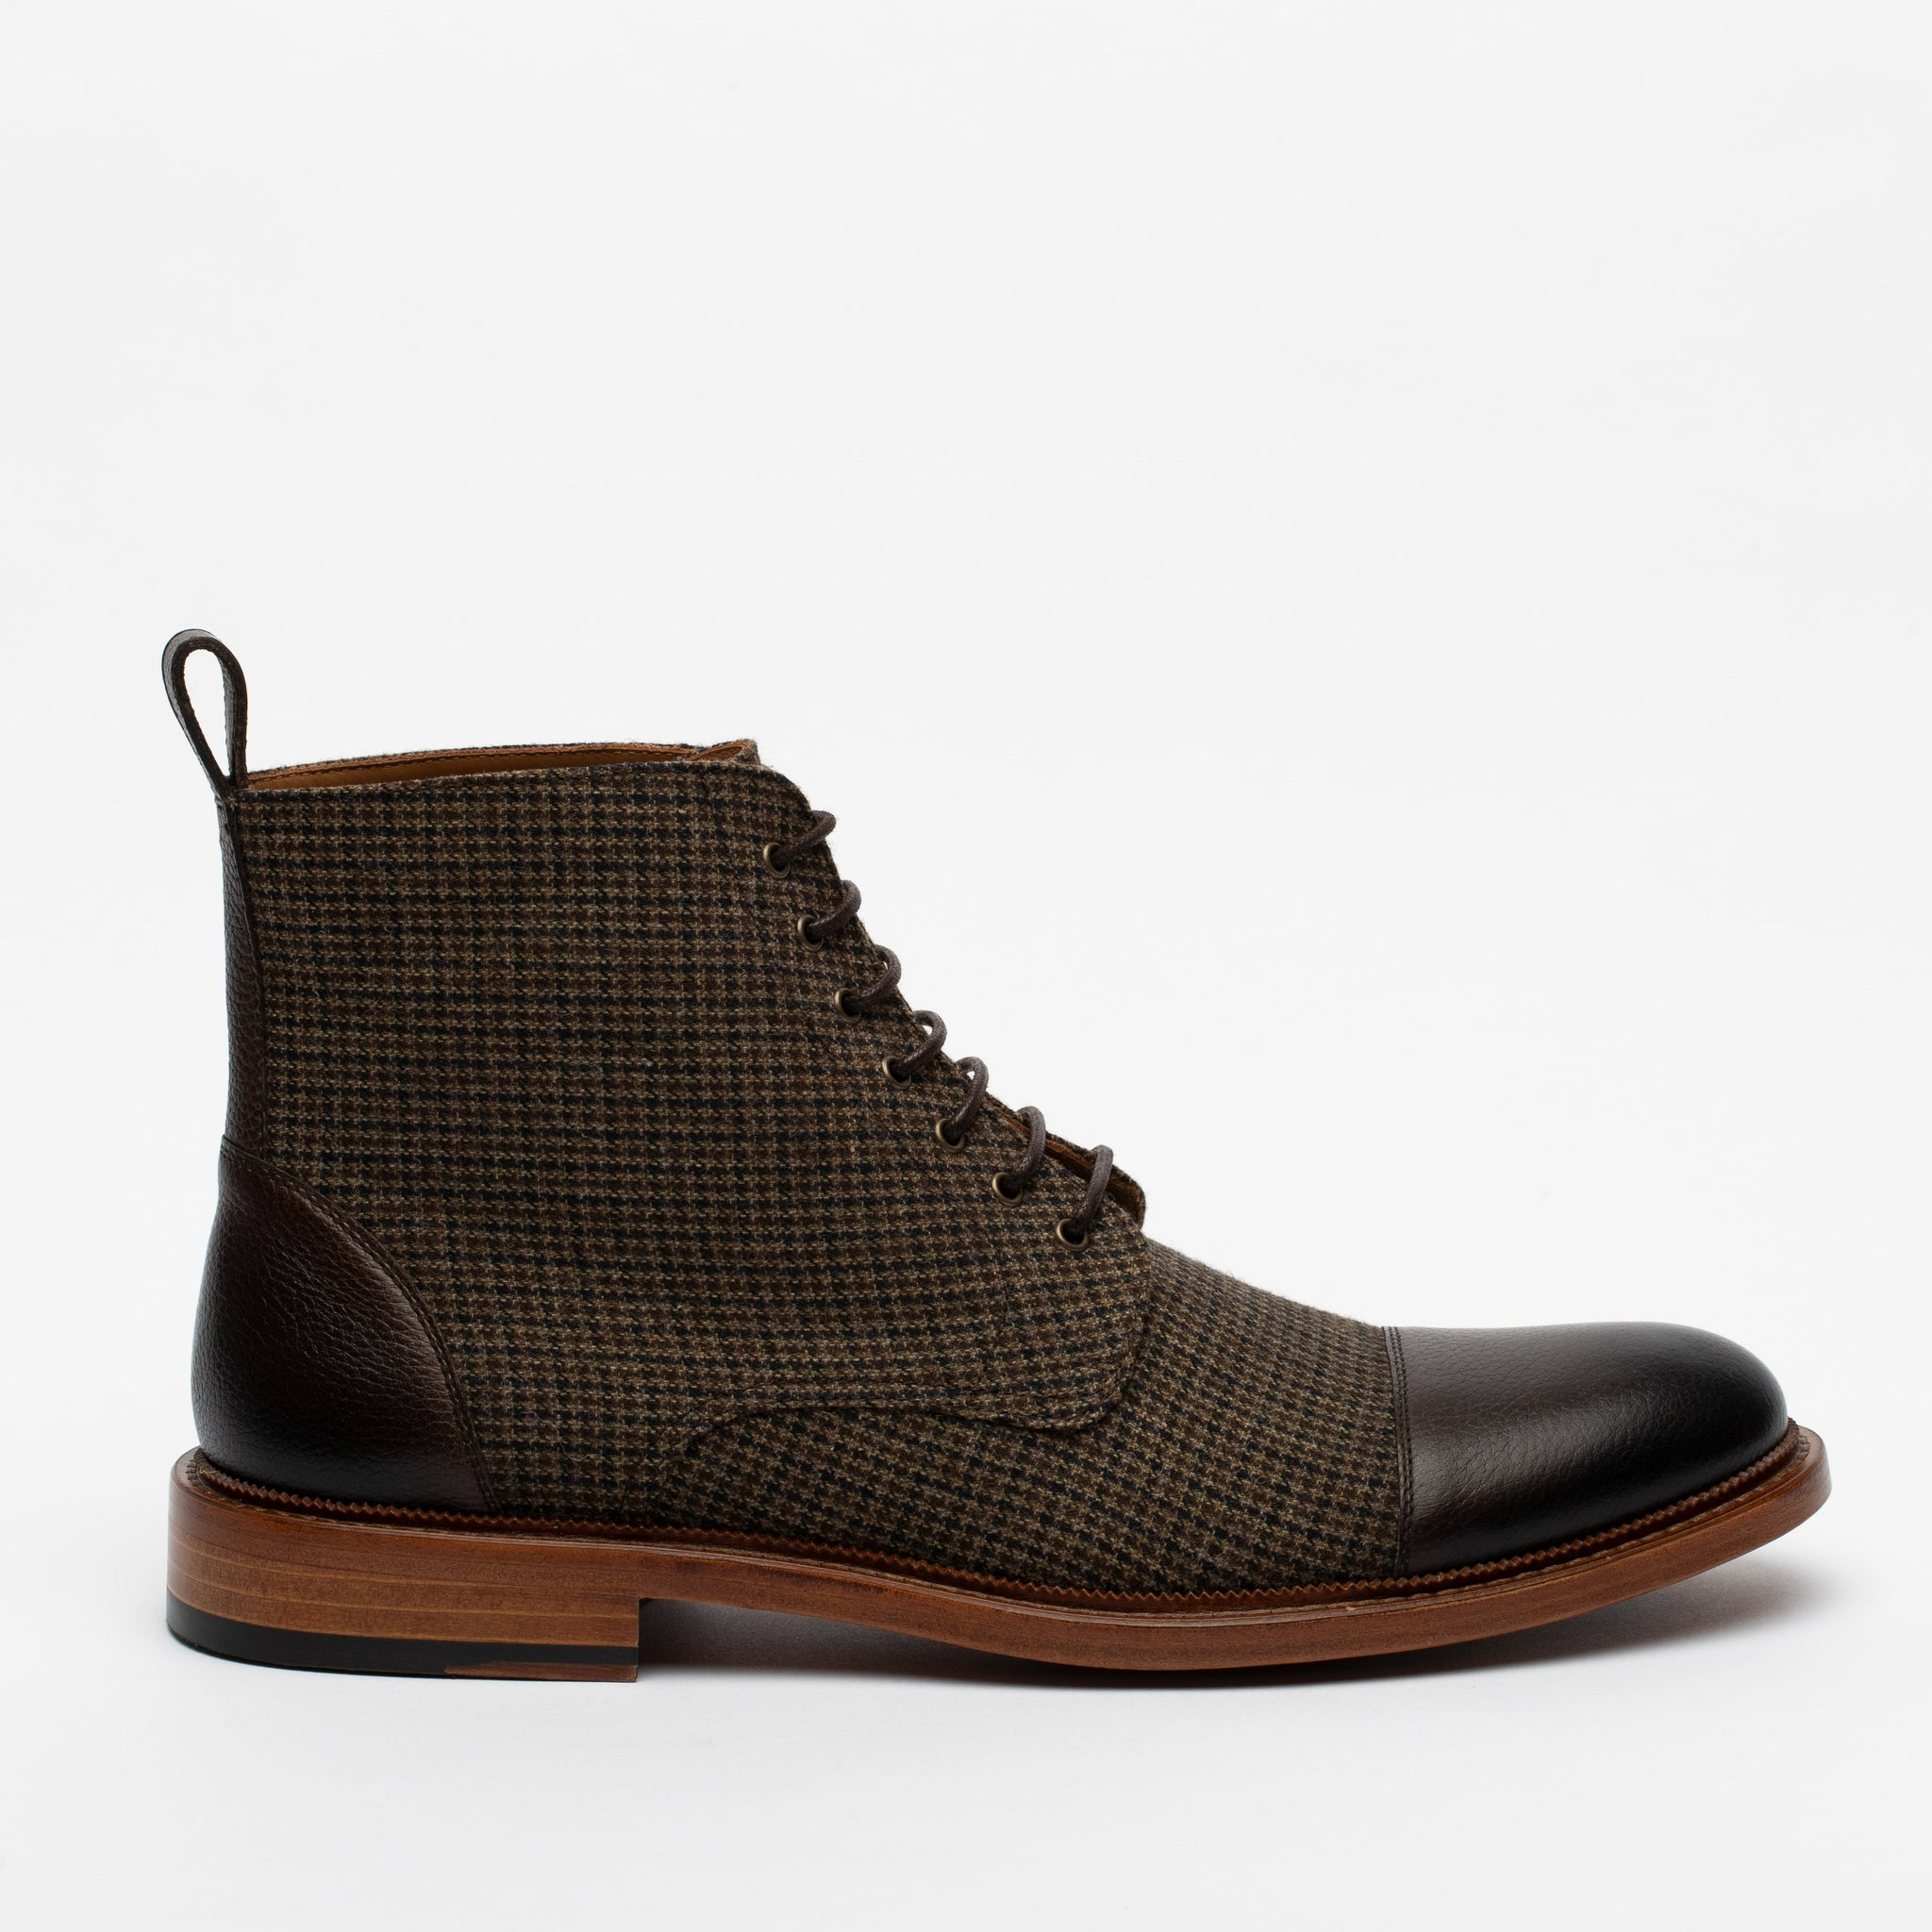 The Jack Boot in Olive (Last Chance